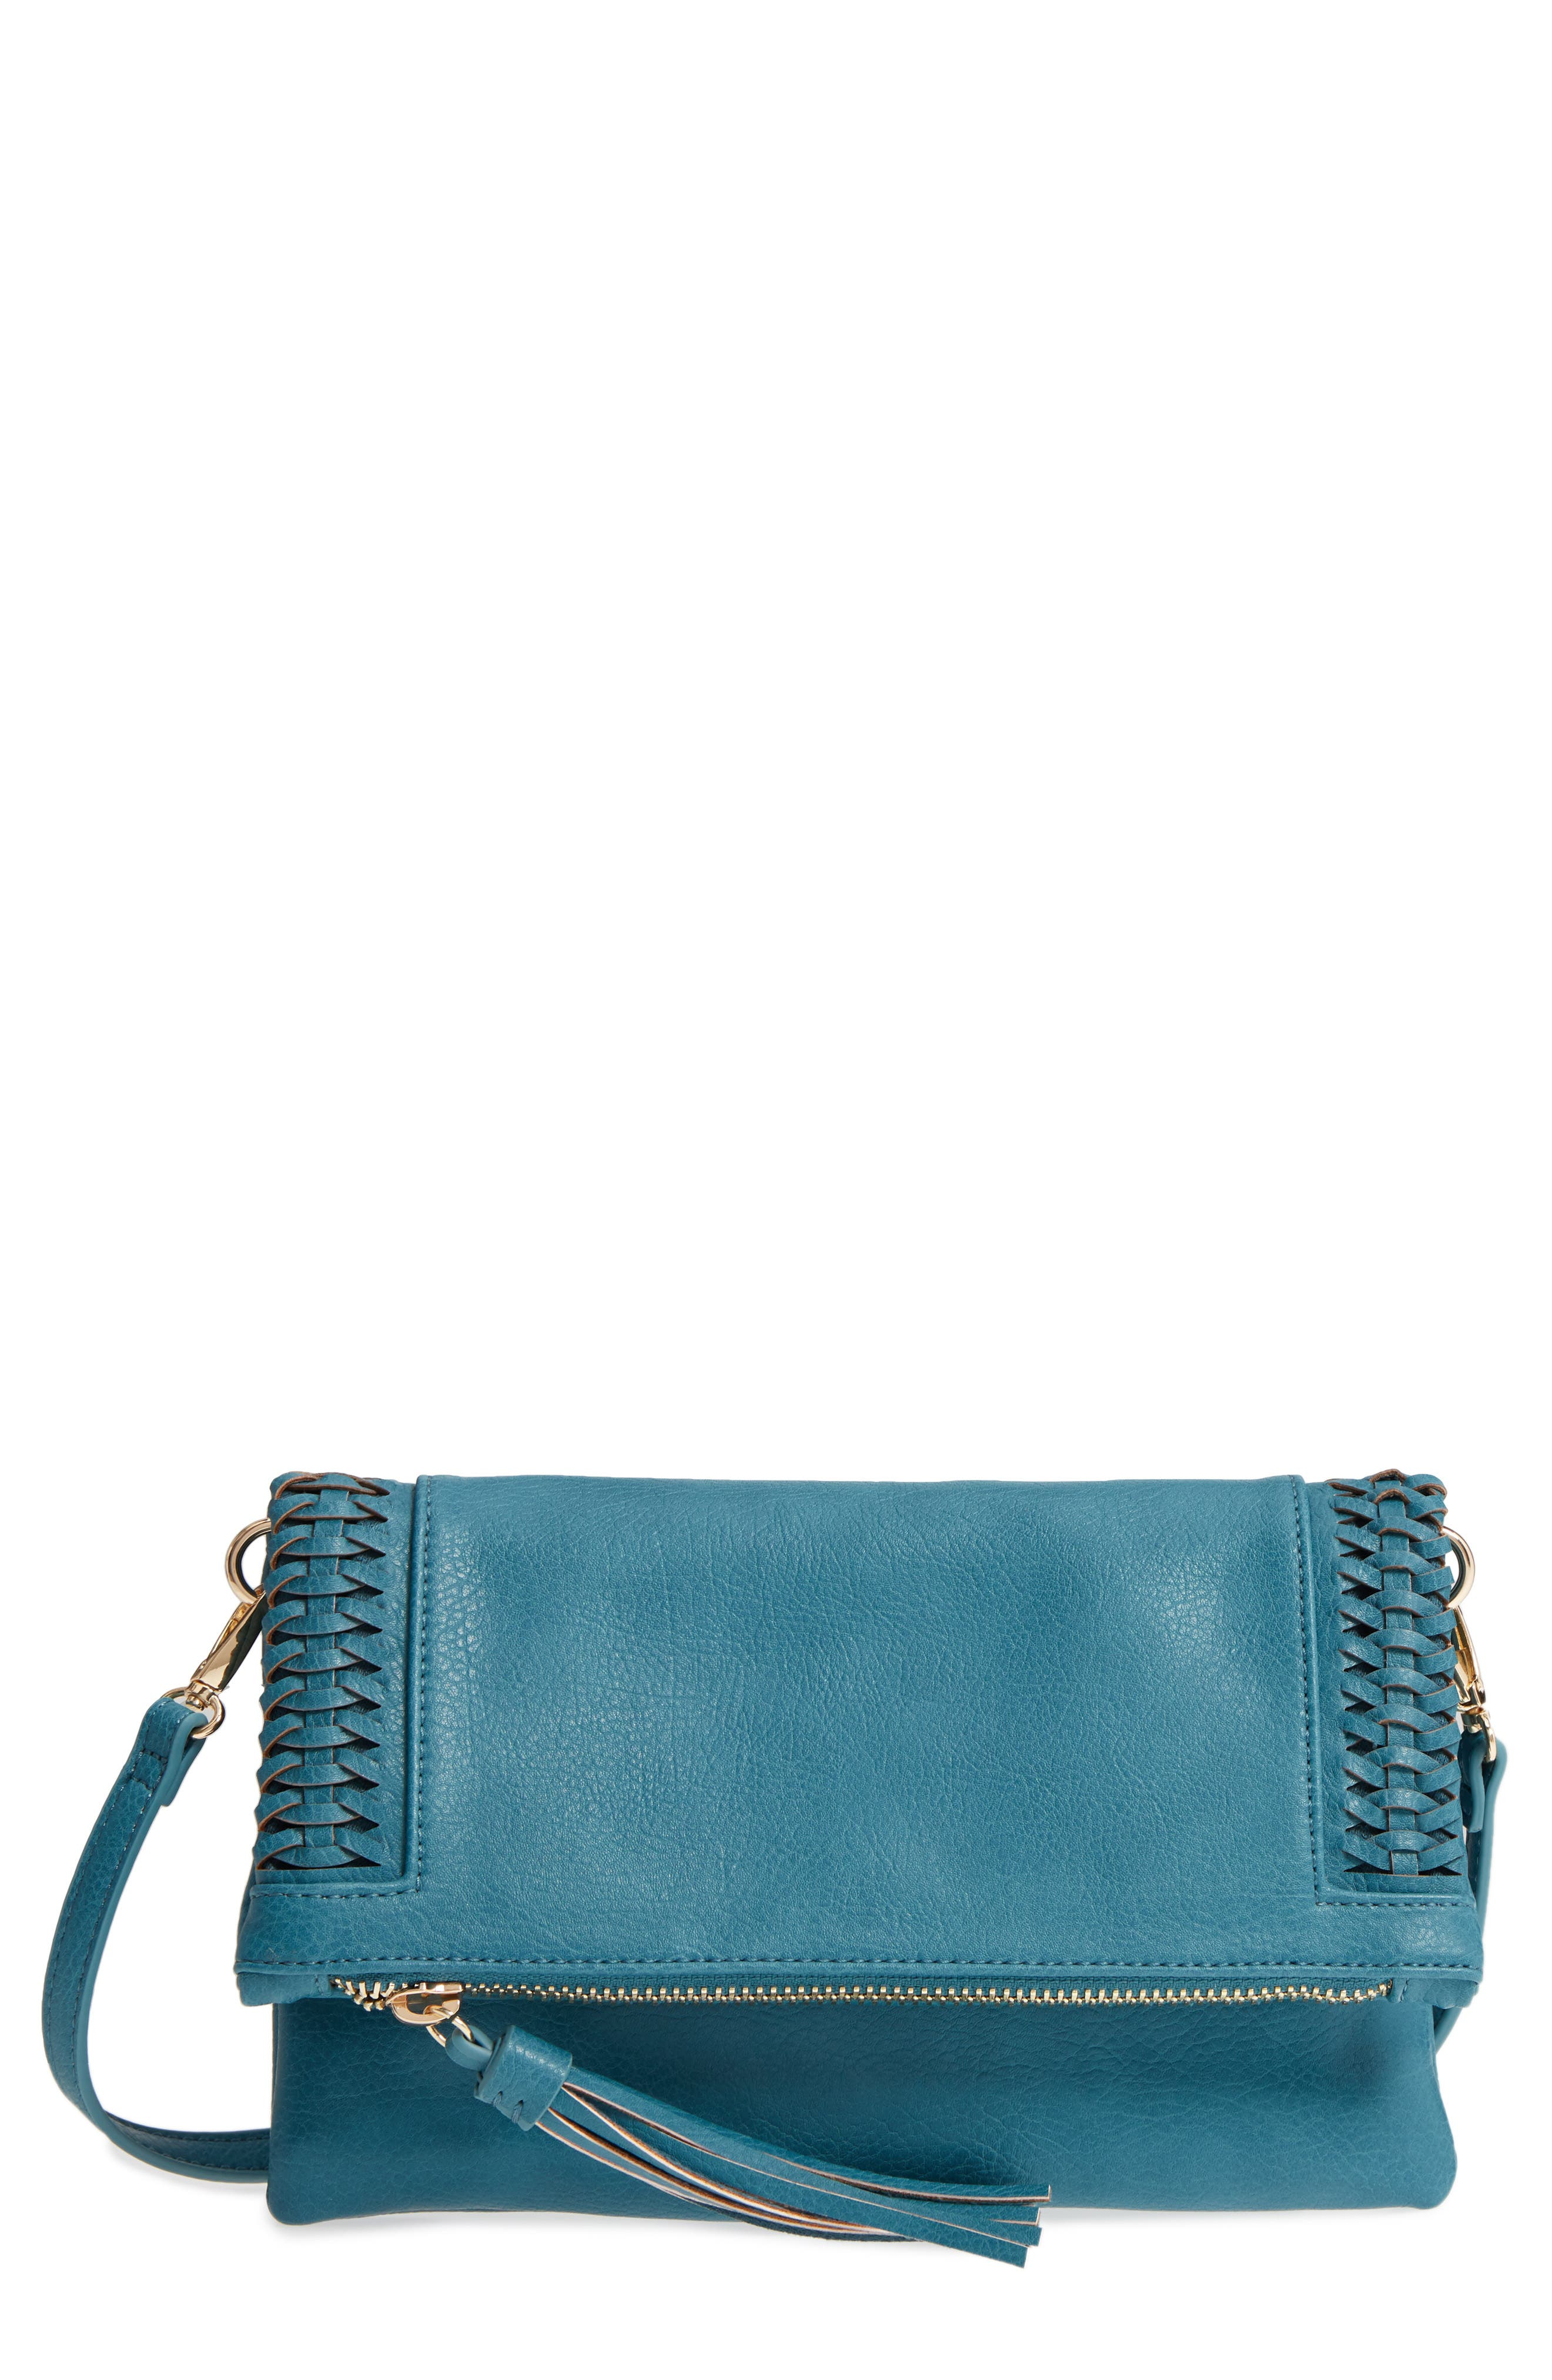 Sole Society Tara Whipstitched Faux Leather Clutch